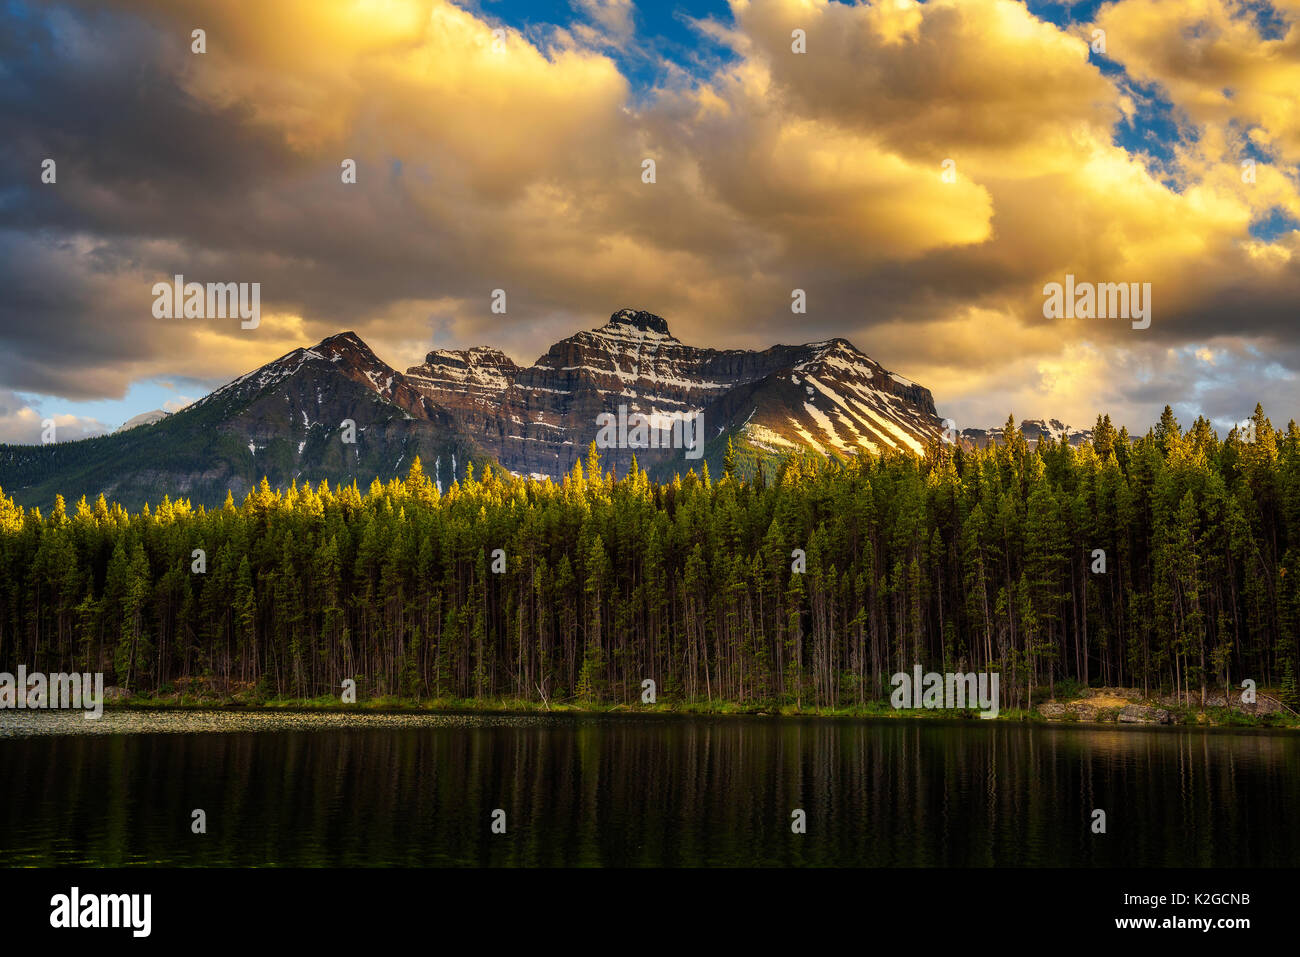 Scenic Sunset over deep forest lungo il lago di Herbert nel Parco Nazionale di Banff, con cime innevate della Canadian Rocky Mountains in background. Immagini Stock